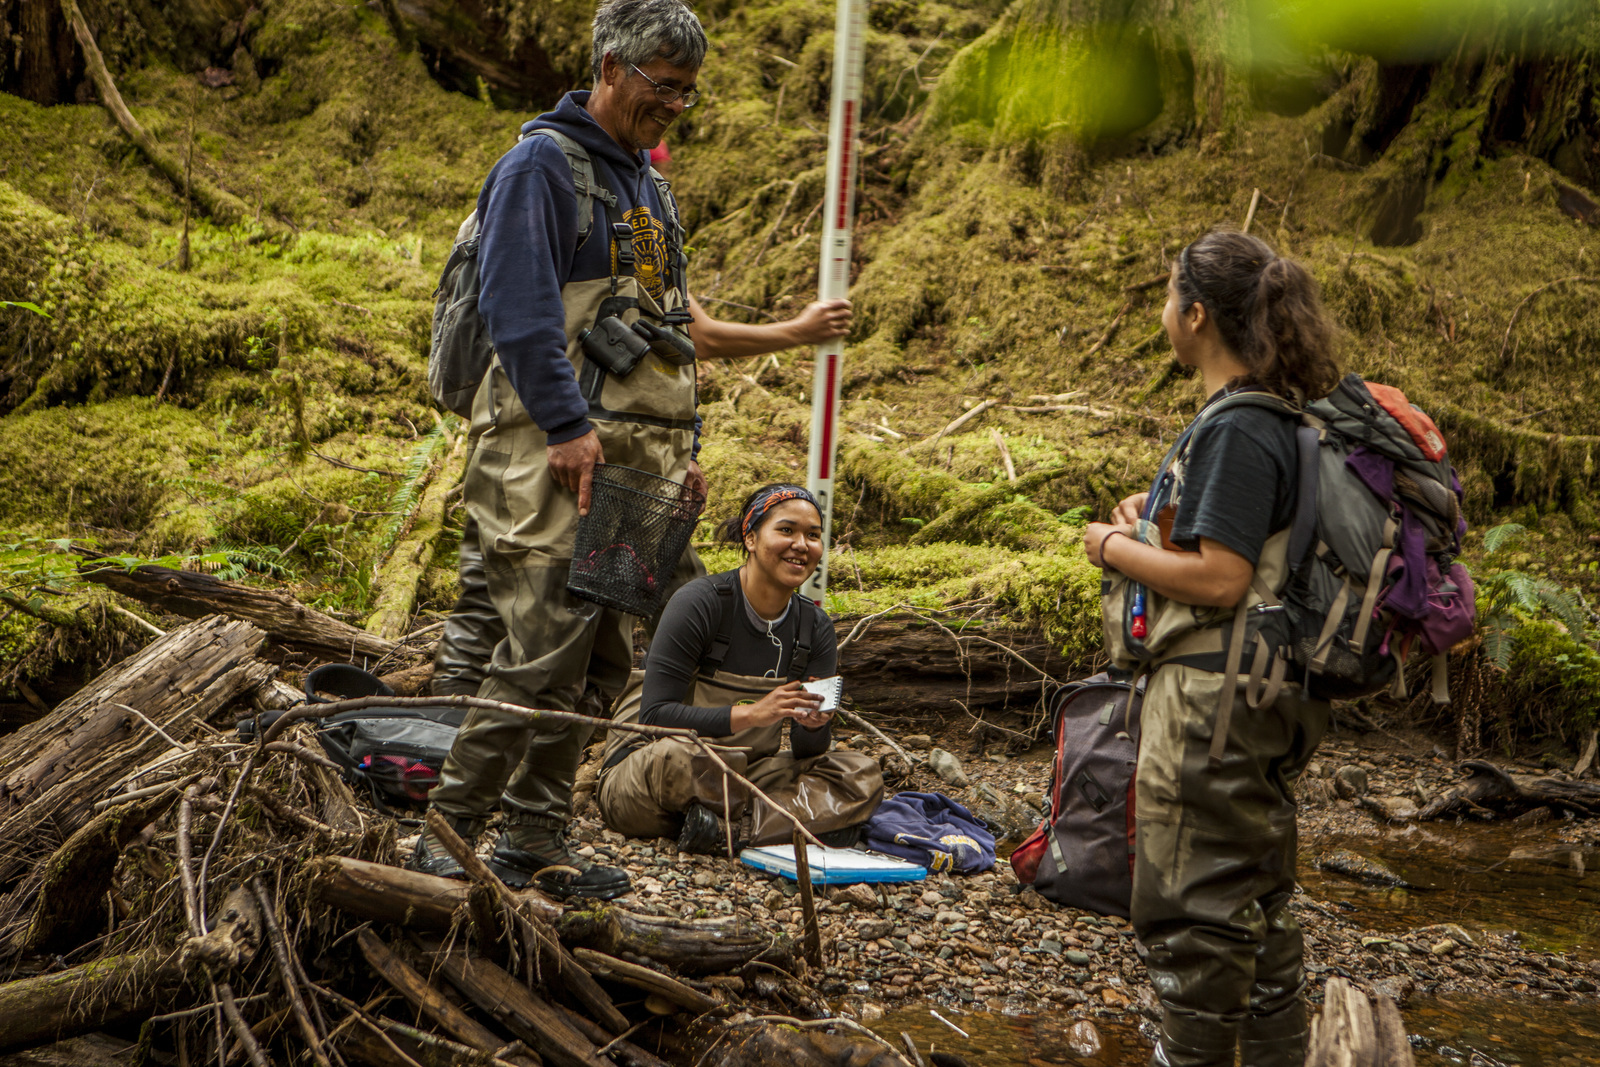 Members of the Haida tribe perform fish surveys on streams at Keat's Inlet on Prince of Wales Island. Streams that provide proof as good salmon habitat can be protected at the highest level by the state of Alaska. Photo by Erika Nortemann/TNC